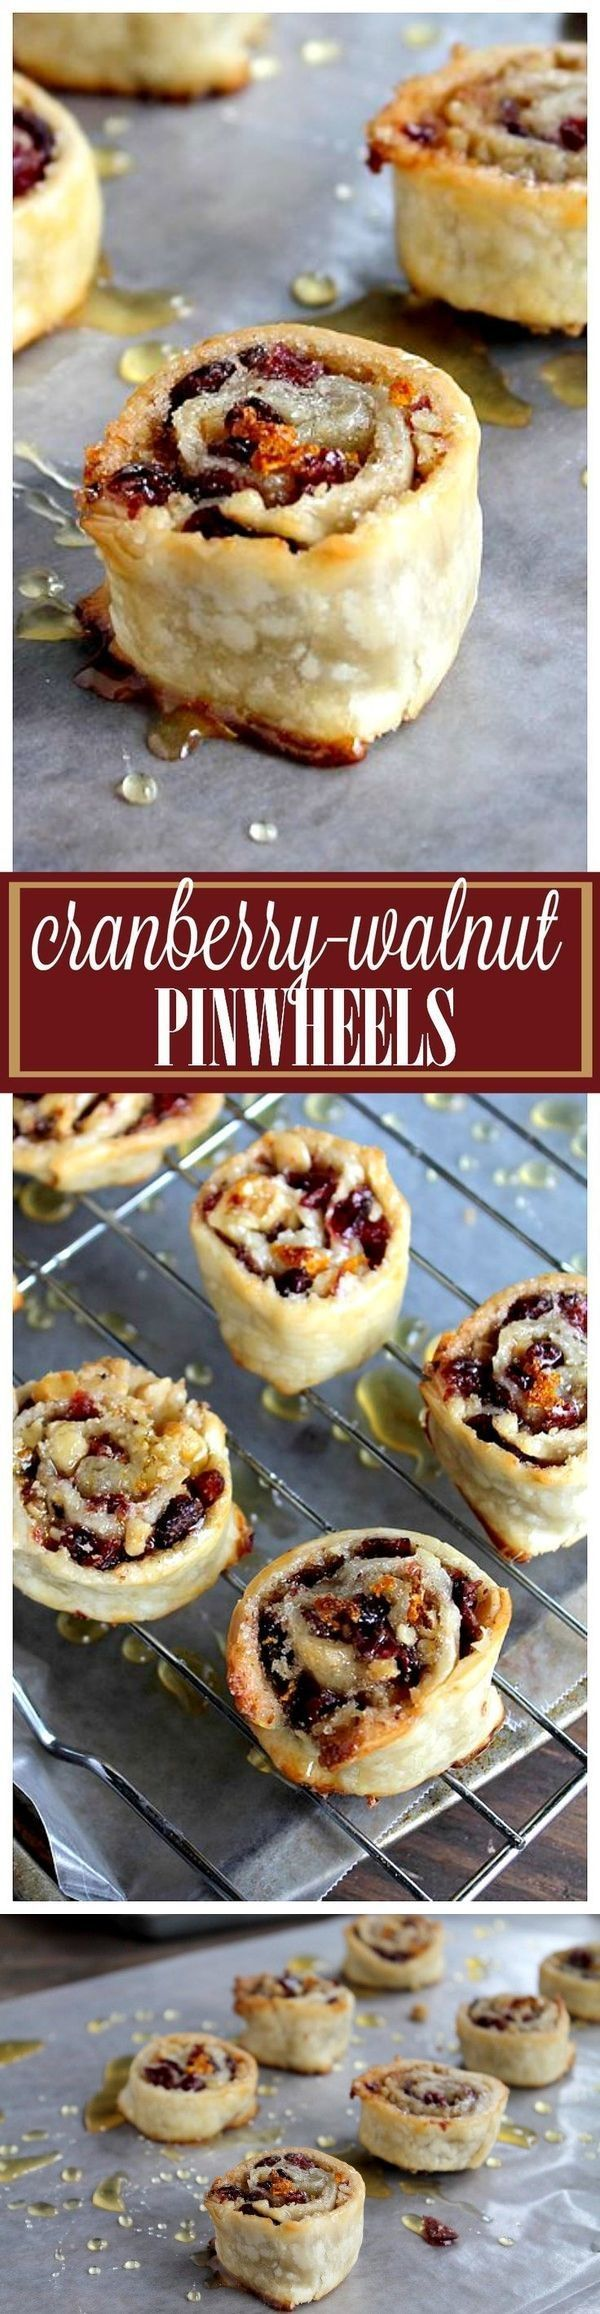 Cranberry and Walnut Pinwheels Recipe (With images